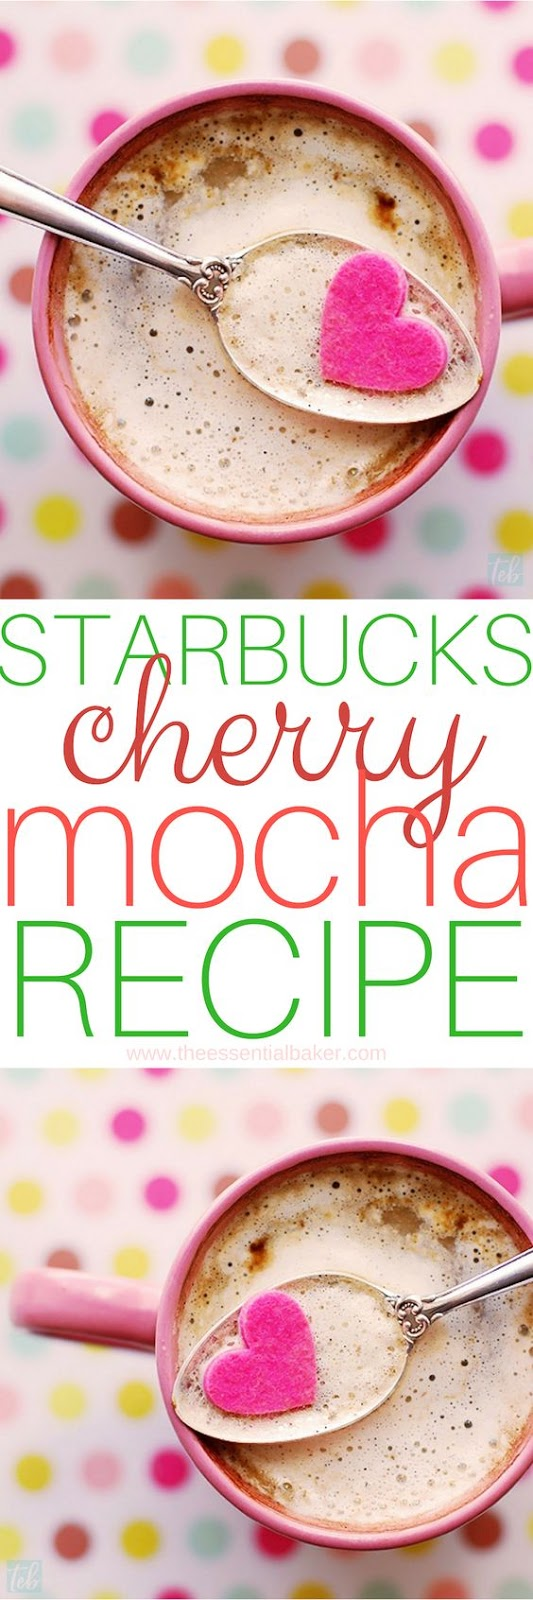 Copycat Starbucks Cherry Mocha Recipe